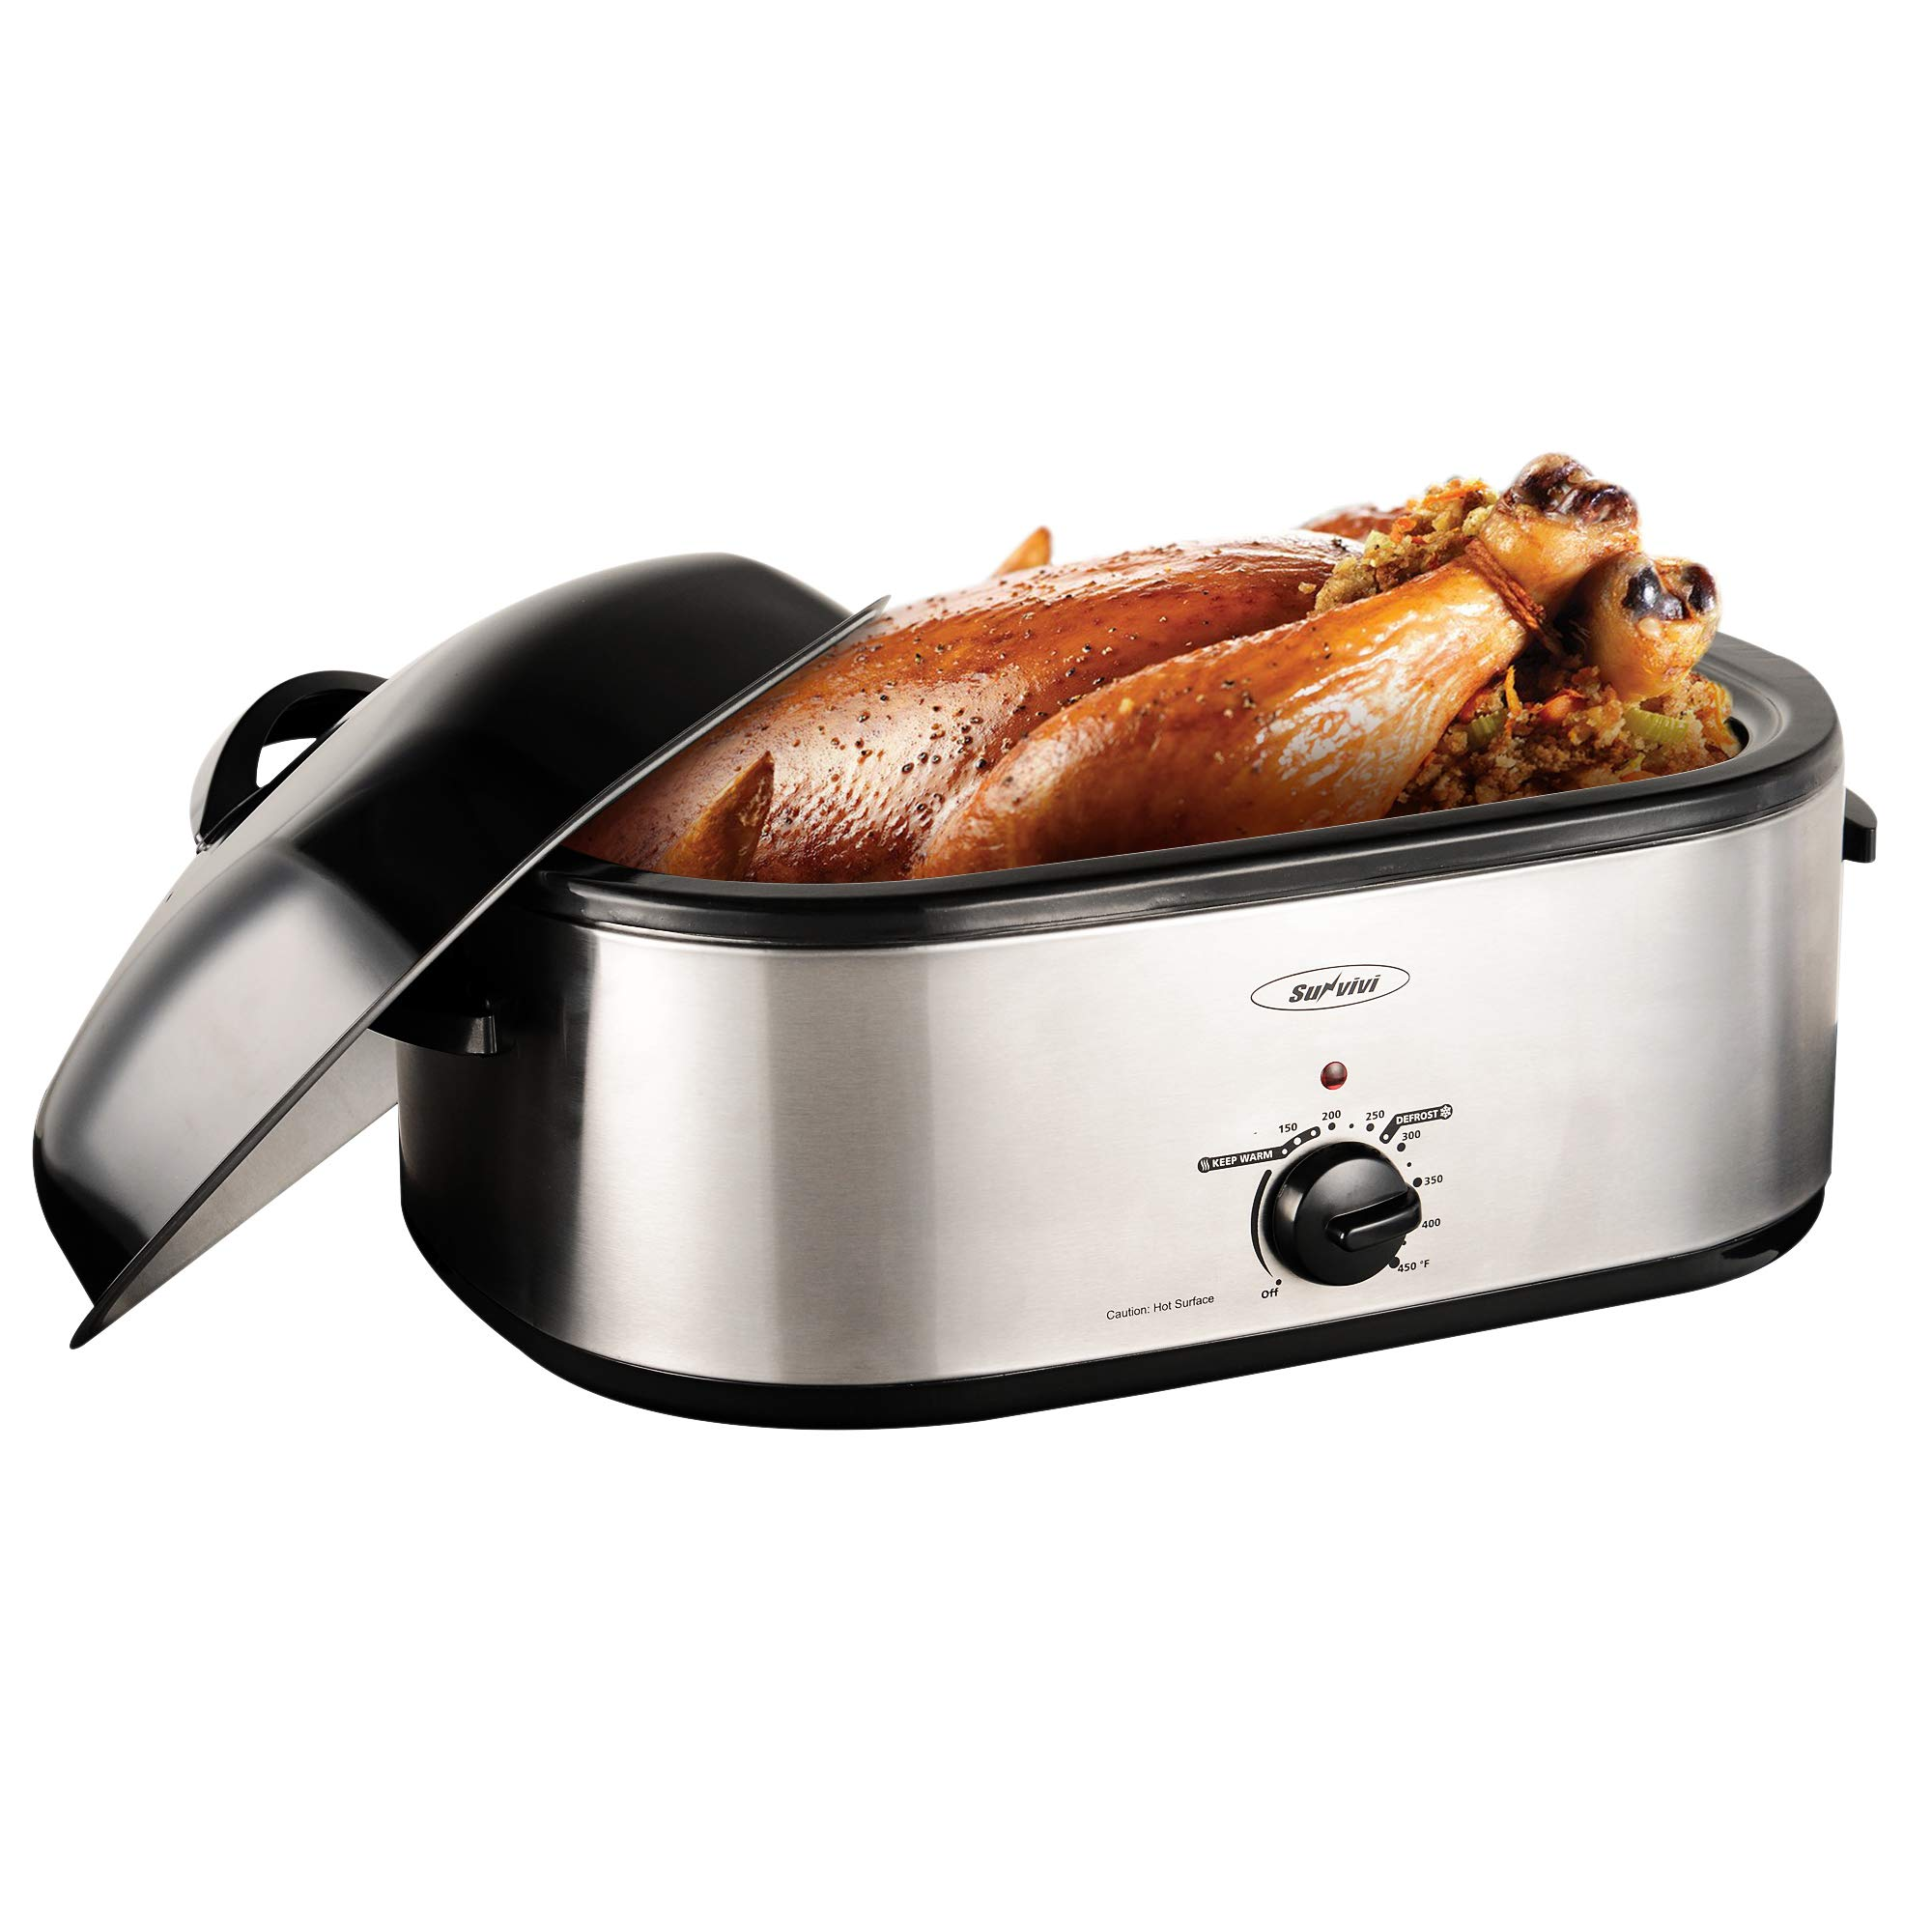 Sunvivi 18 Quart Electric Roaster Oven, Turkey Roaster Electric Roaster Oven Buffet with Self-Basting Lid Removable Pan, Full-Range Temperature Control Cool-Touch Handles, Silver by SUNVIVI OUTDOOR